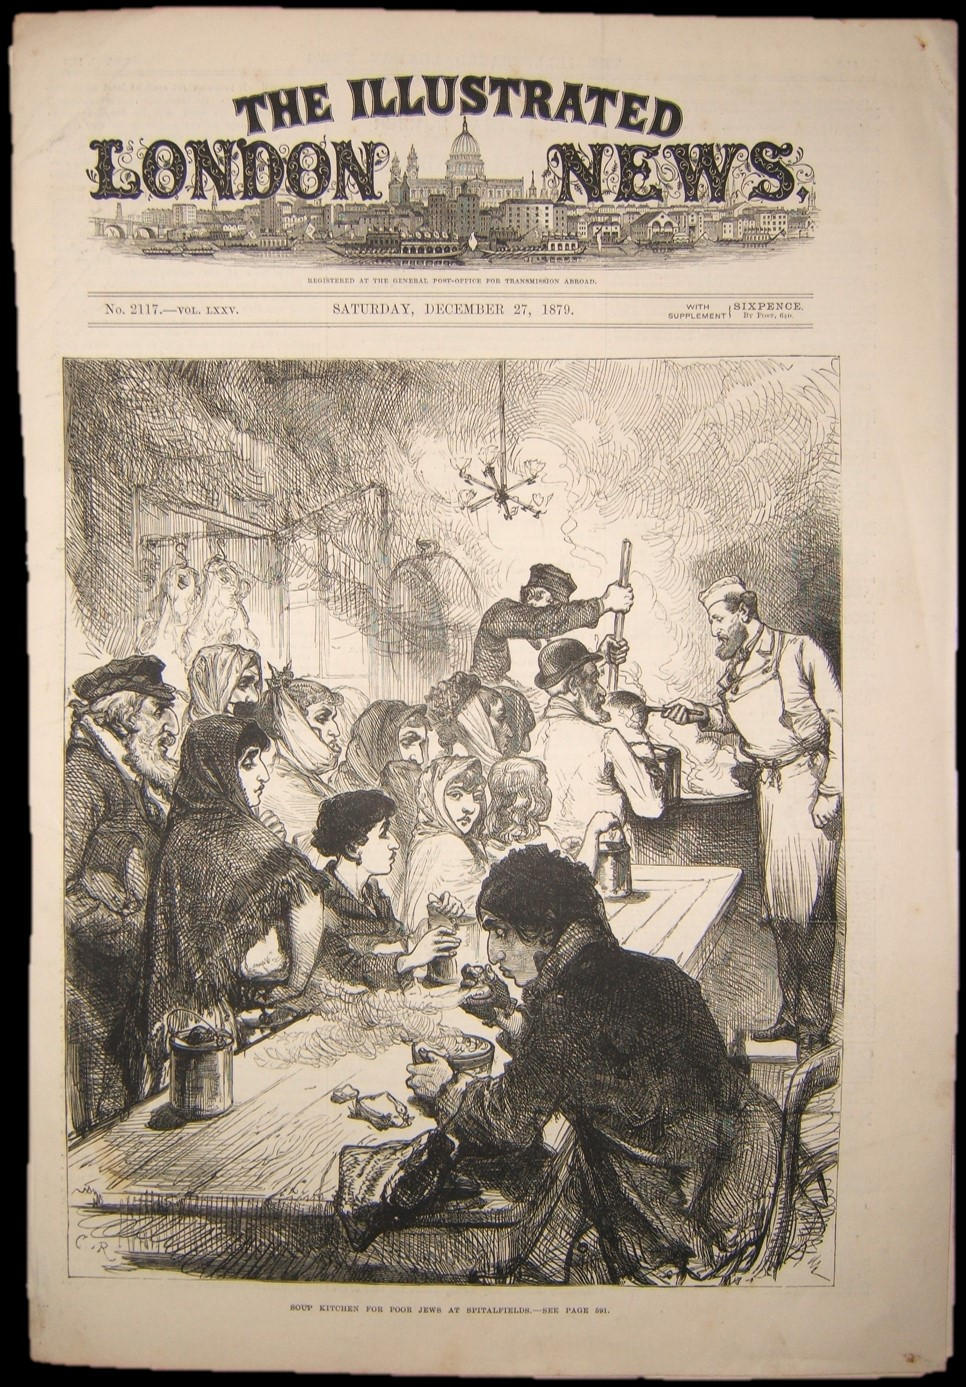 British Judaica print of Soup Kitchen for Poor Jews at Spitalfields London, 1879